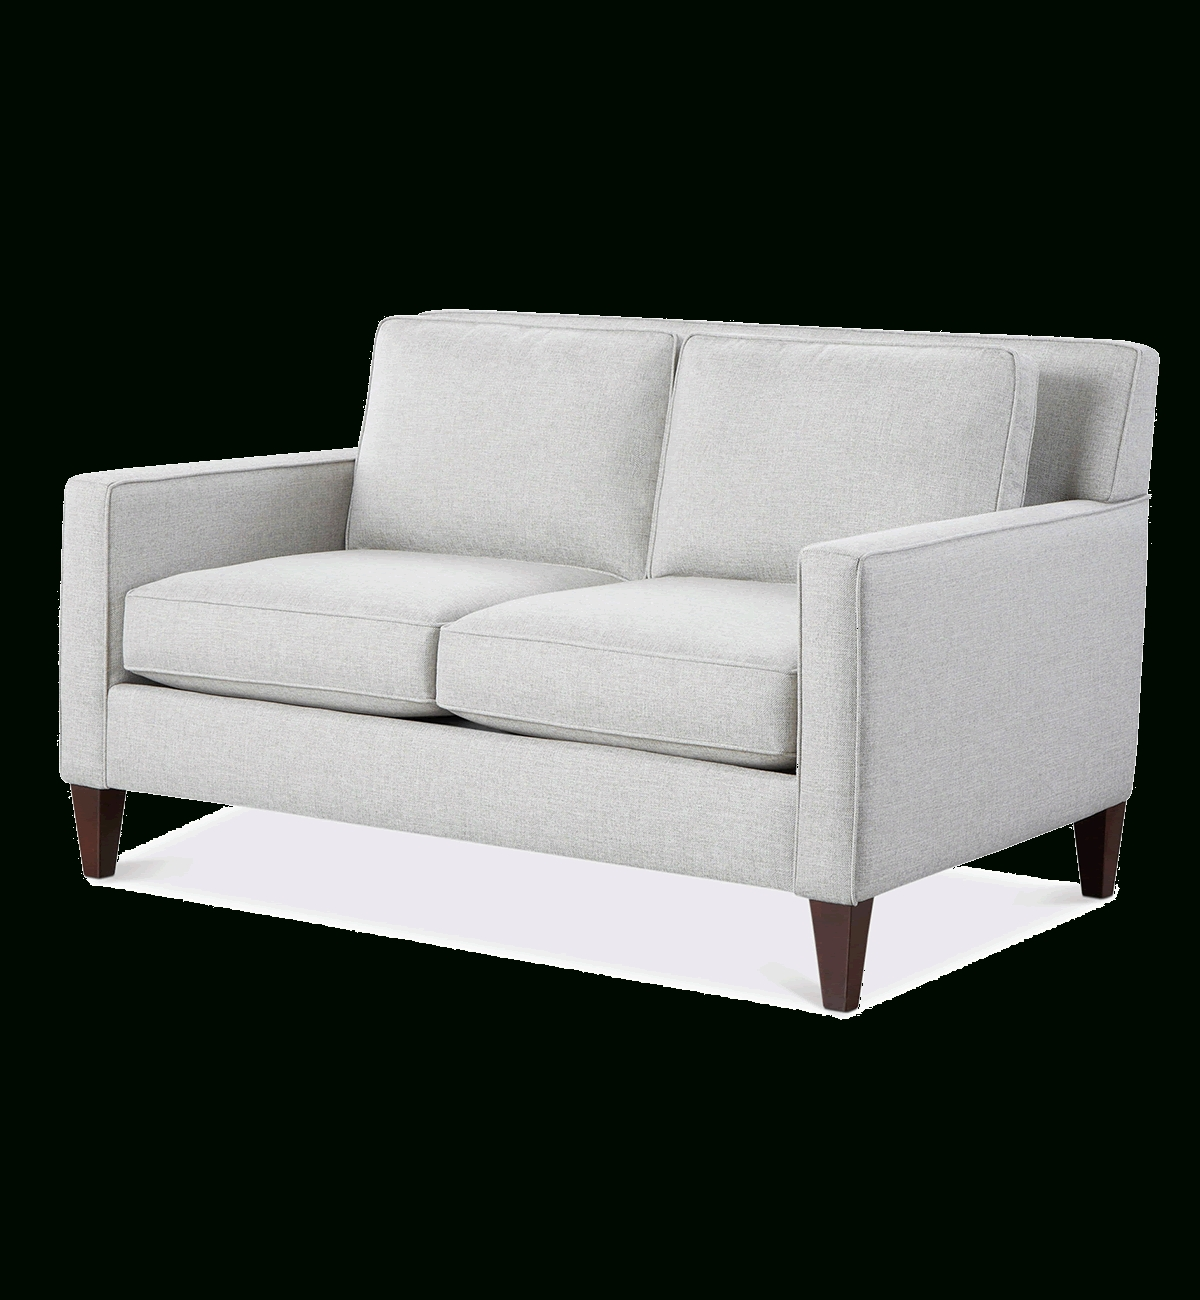 Couches And Sofas – Macy's With Regard To Most Recent Macys Sofas (View 11 of 20)